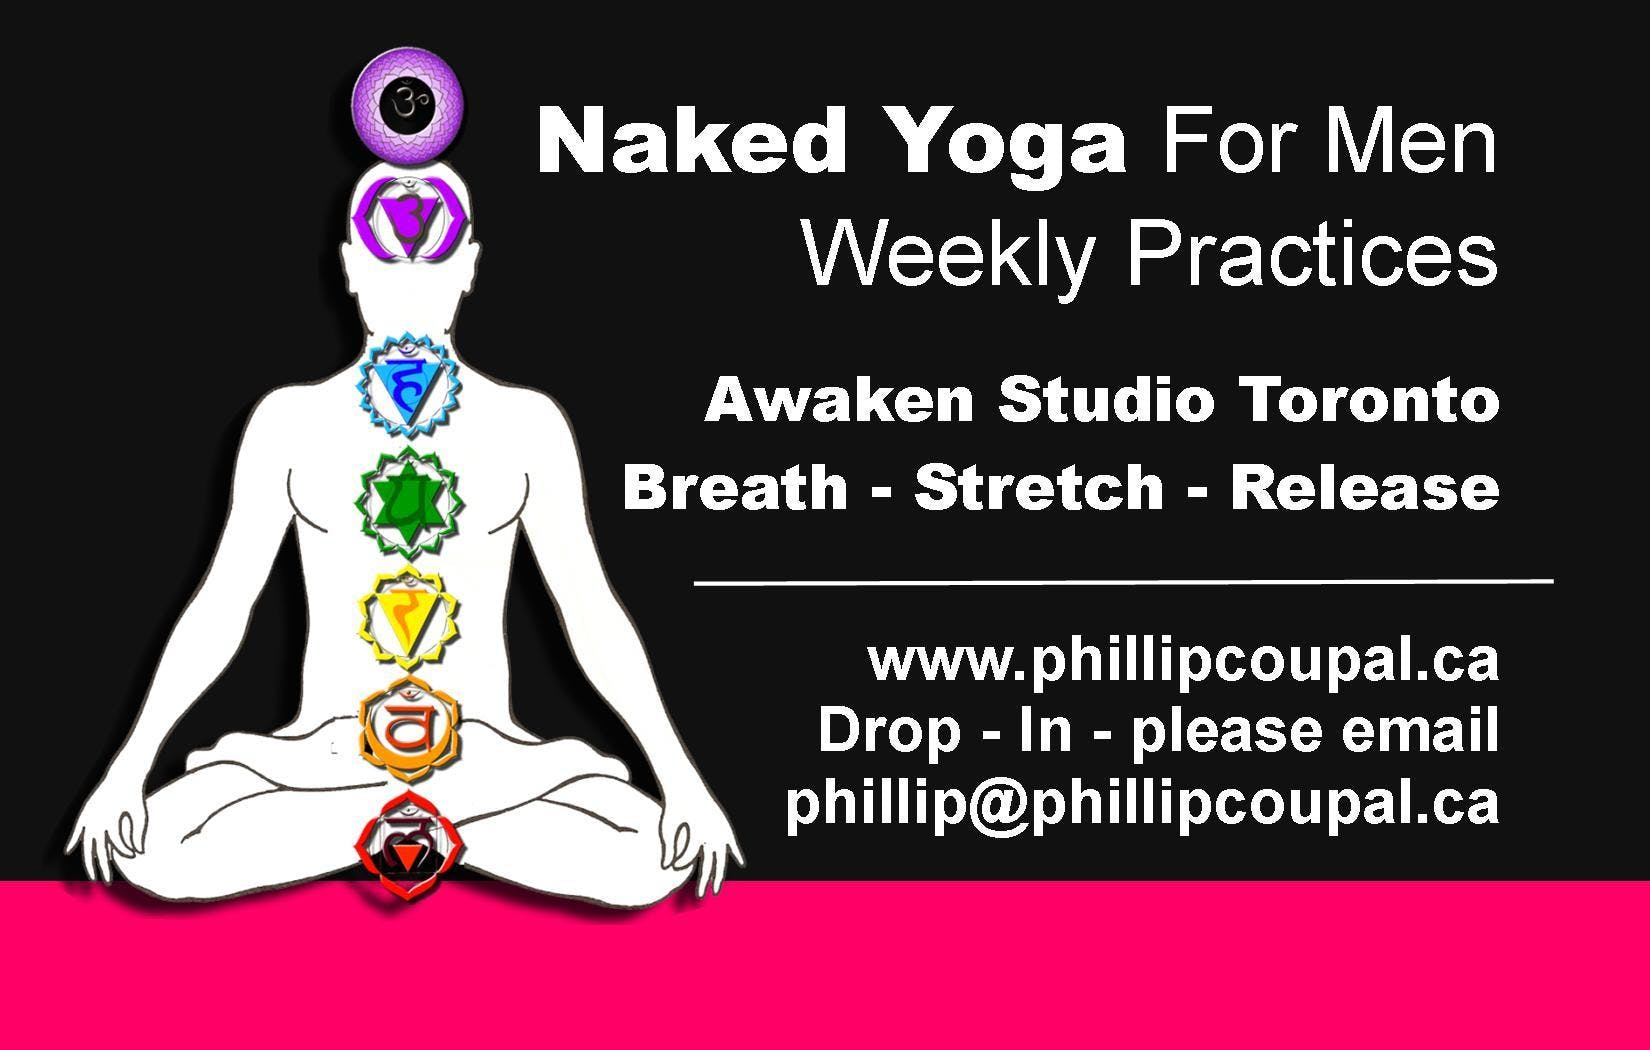 Naked Yoga for Men - Tuesday Evening at the A